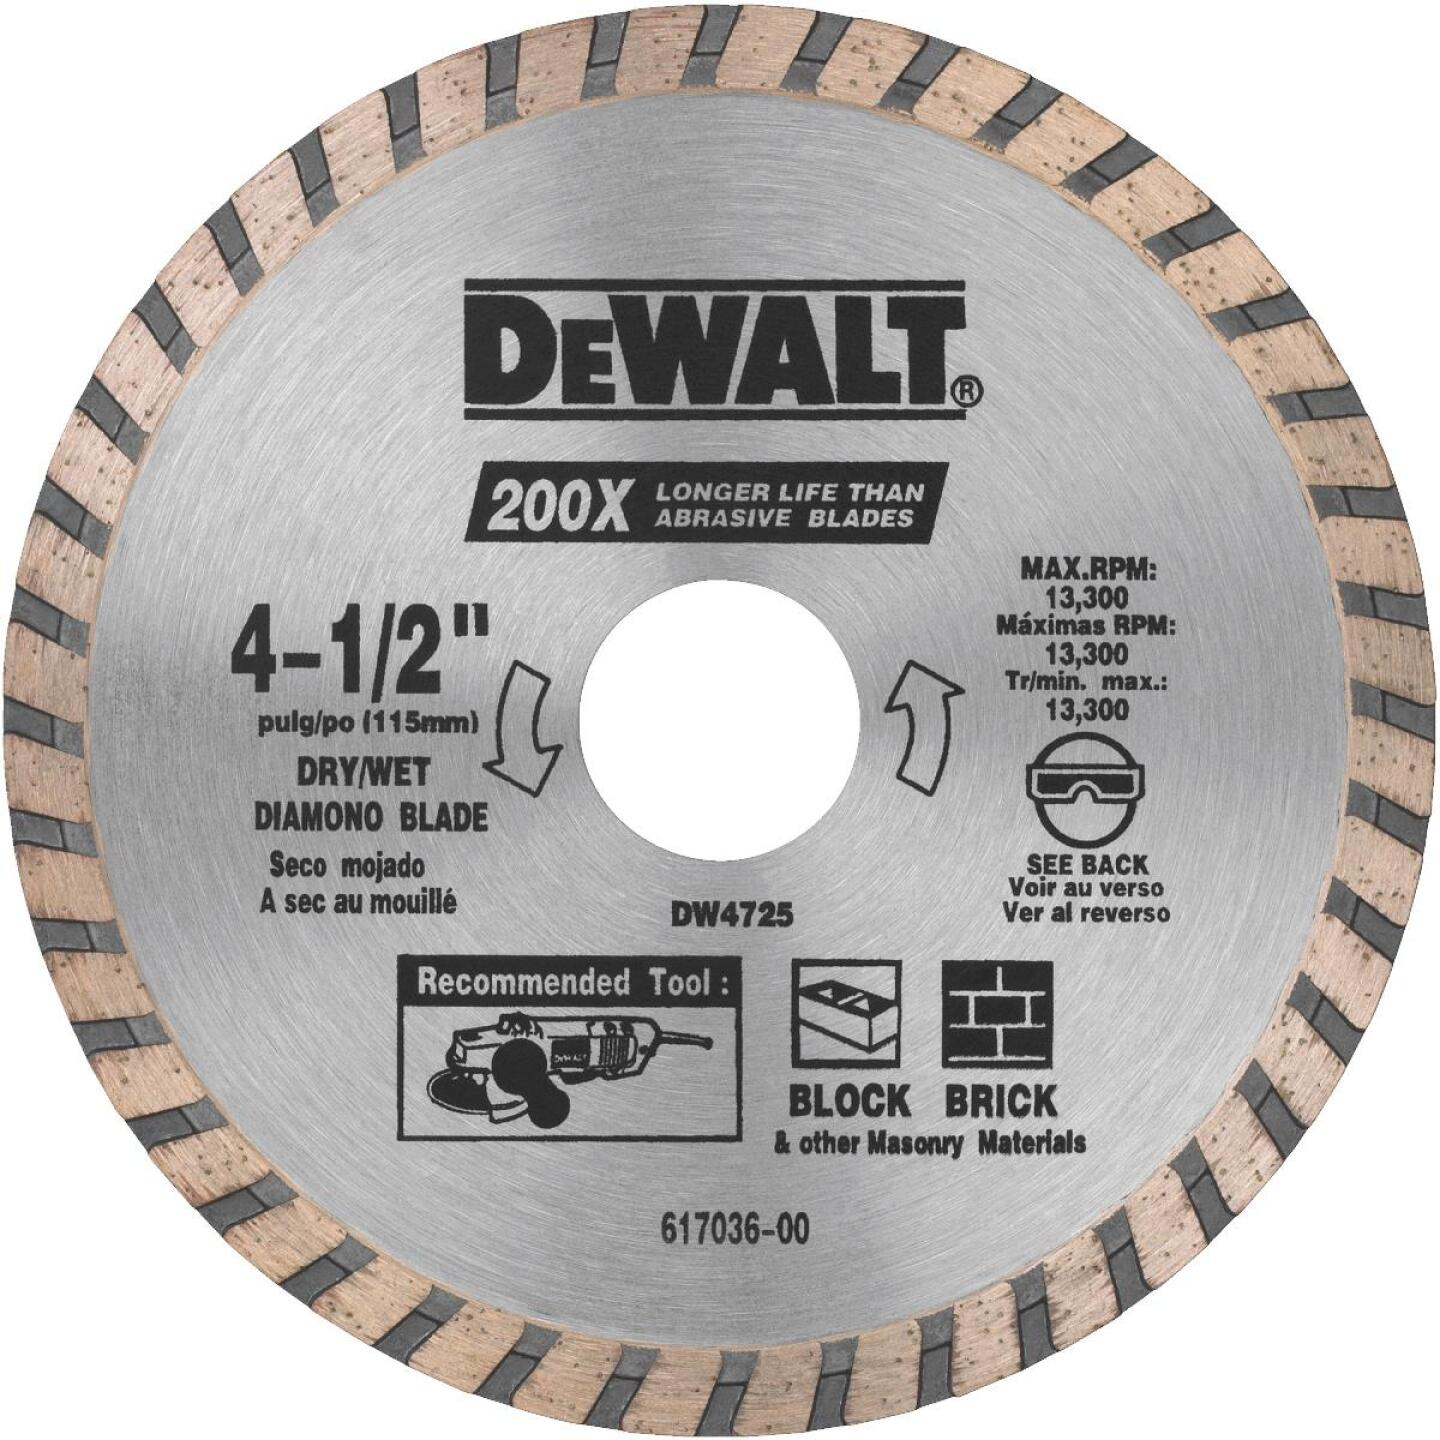 DeWalt High Performance 4-1/2 In. Turbo Rim Dry/Wet Cut Diamond Blade Image 1